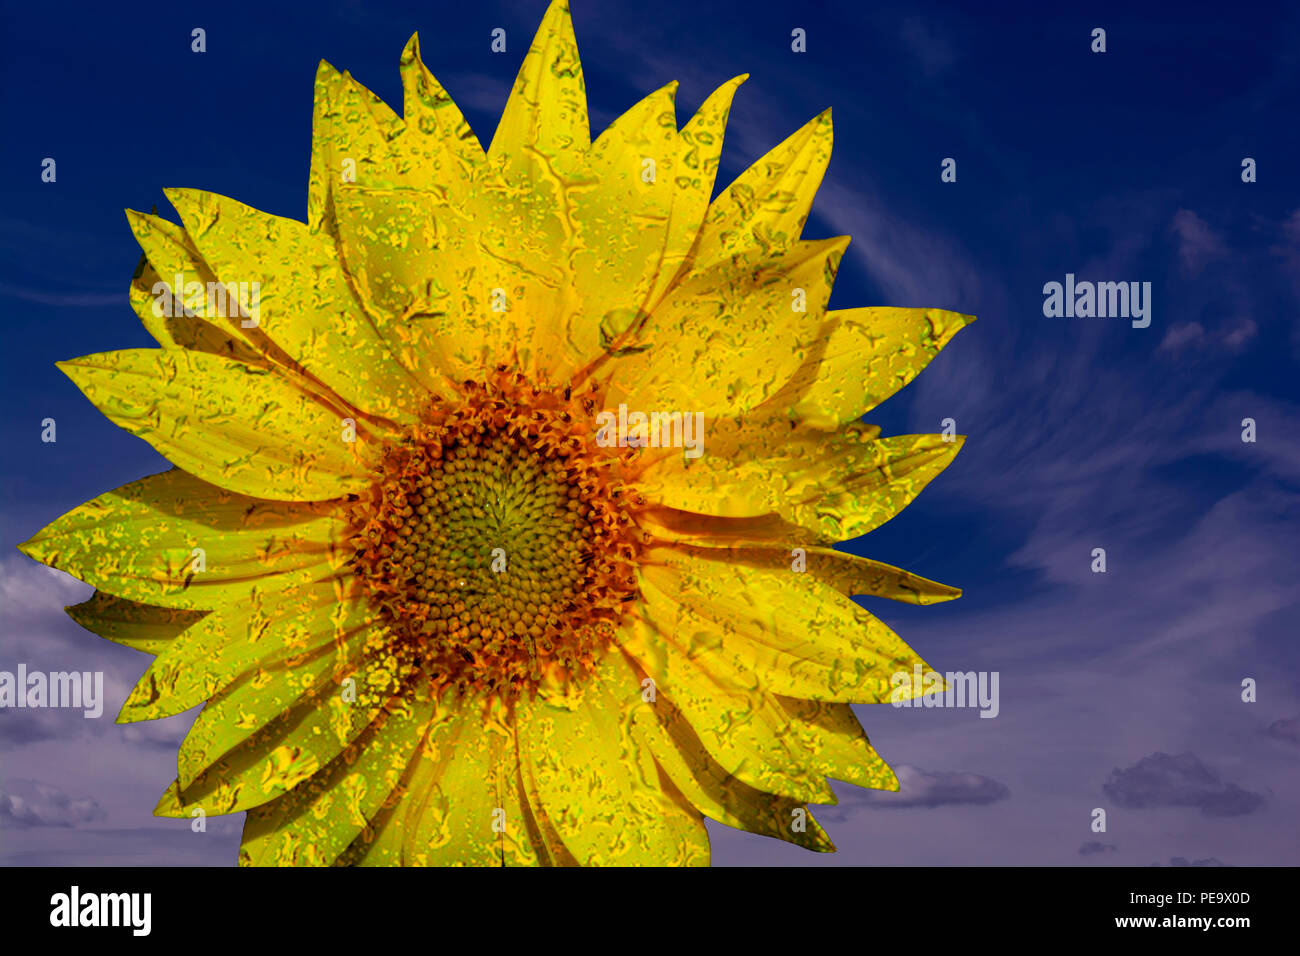 Concept sunflower : Sunlower with raindrops - Stock Image